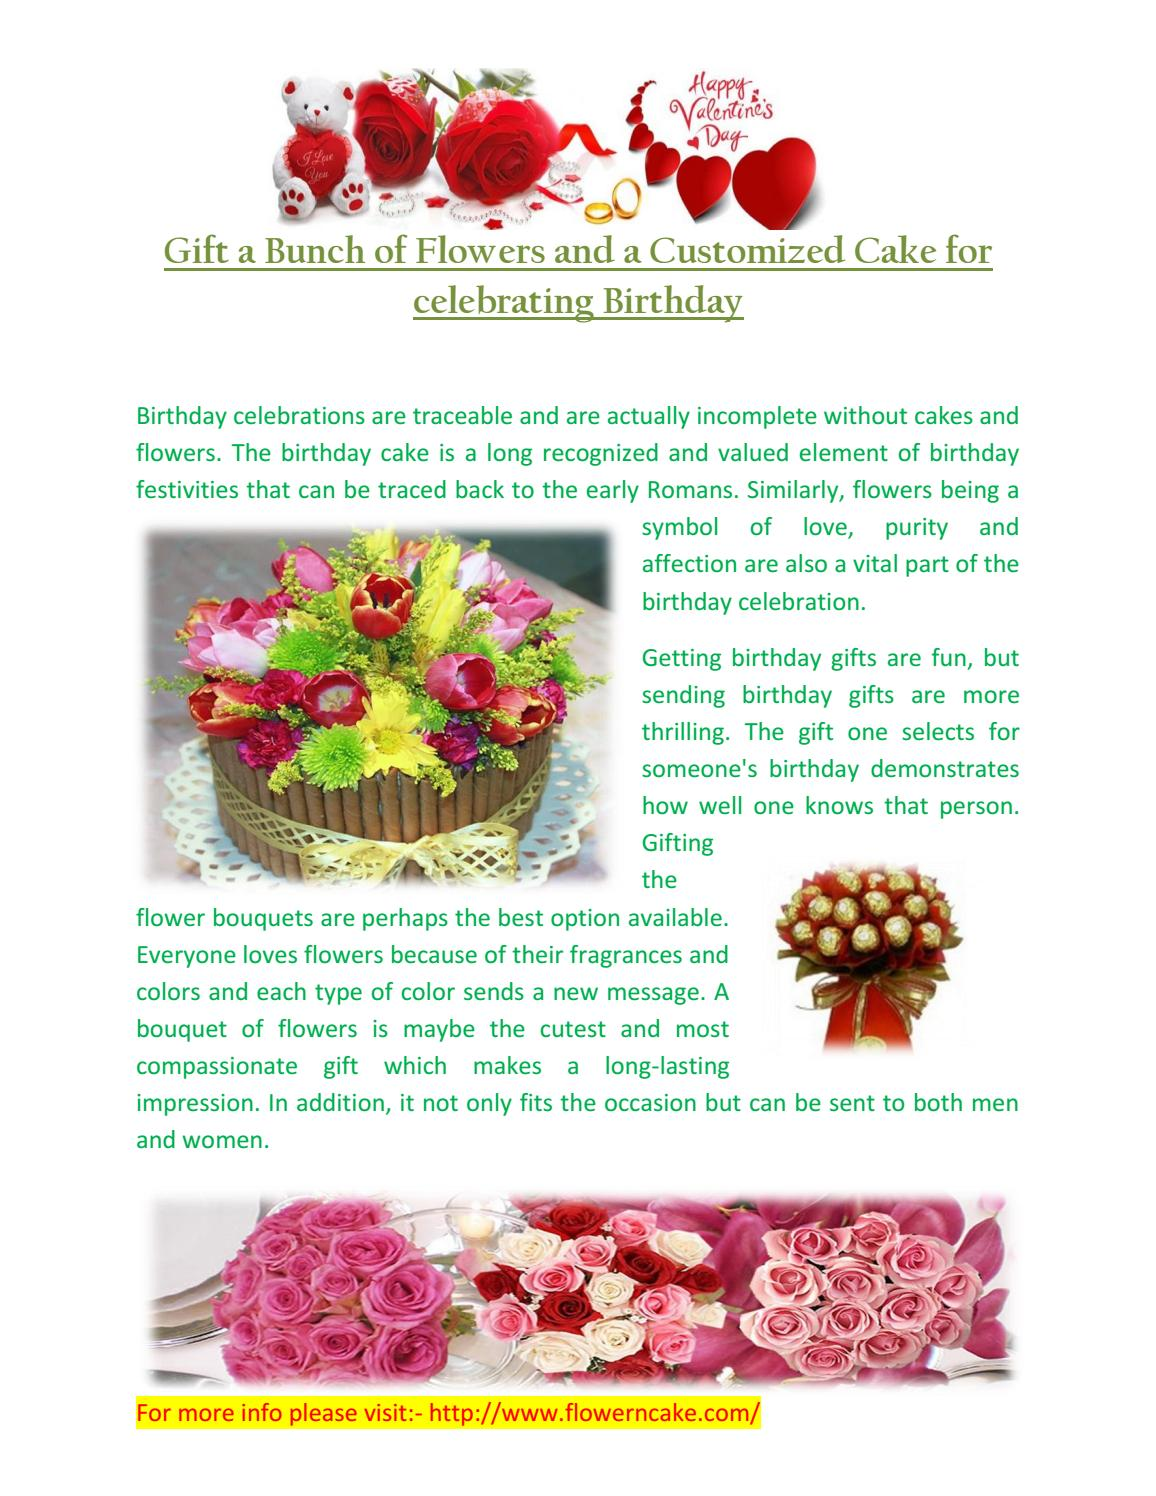 Surprising Gift A Bunch Of Flowers And A Customized Cake For Celebrating Birthday Cards Printable Opercafe Filternl